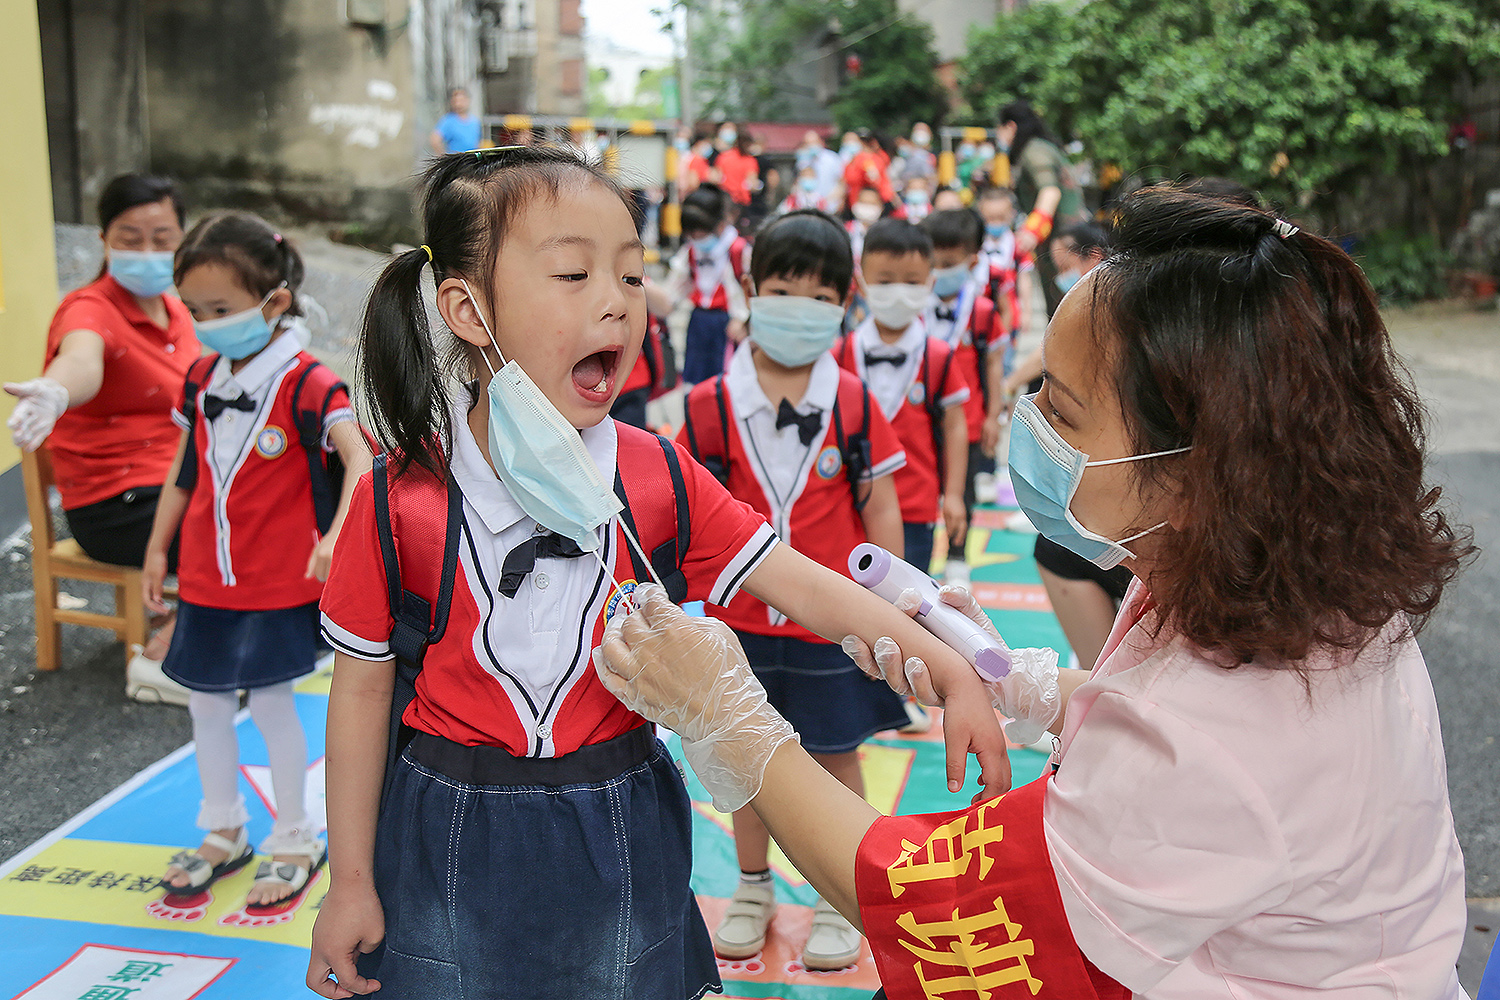 A staff member checks the oral health of a child before she enters a kindergarten classroom in Yongzhou, China, on May 11. STR/AFP via Getty Images